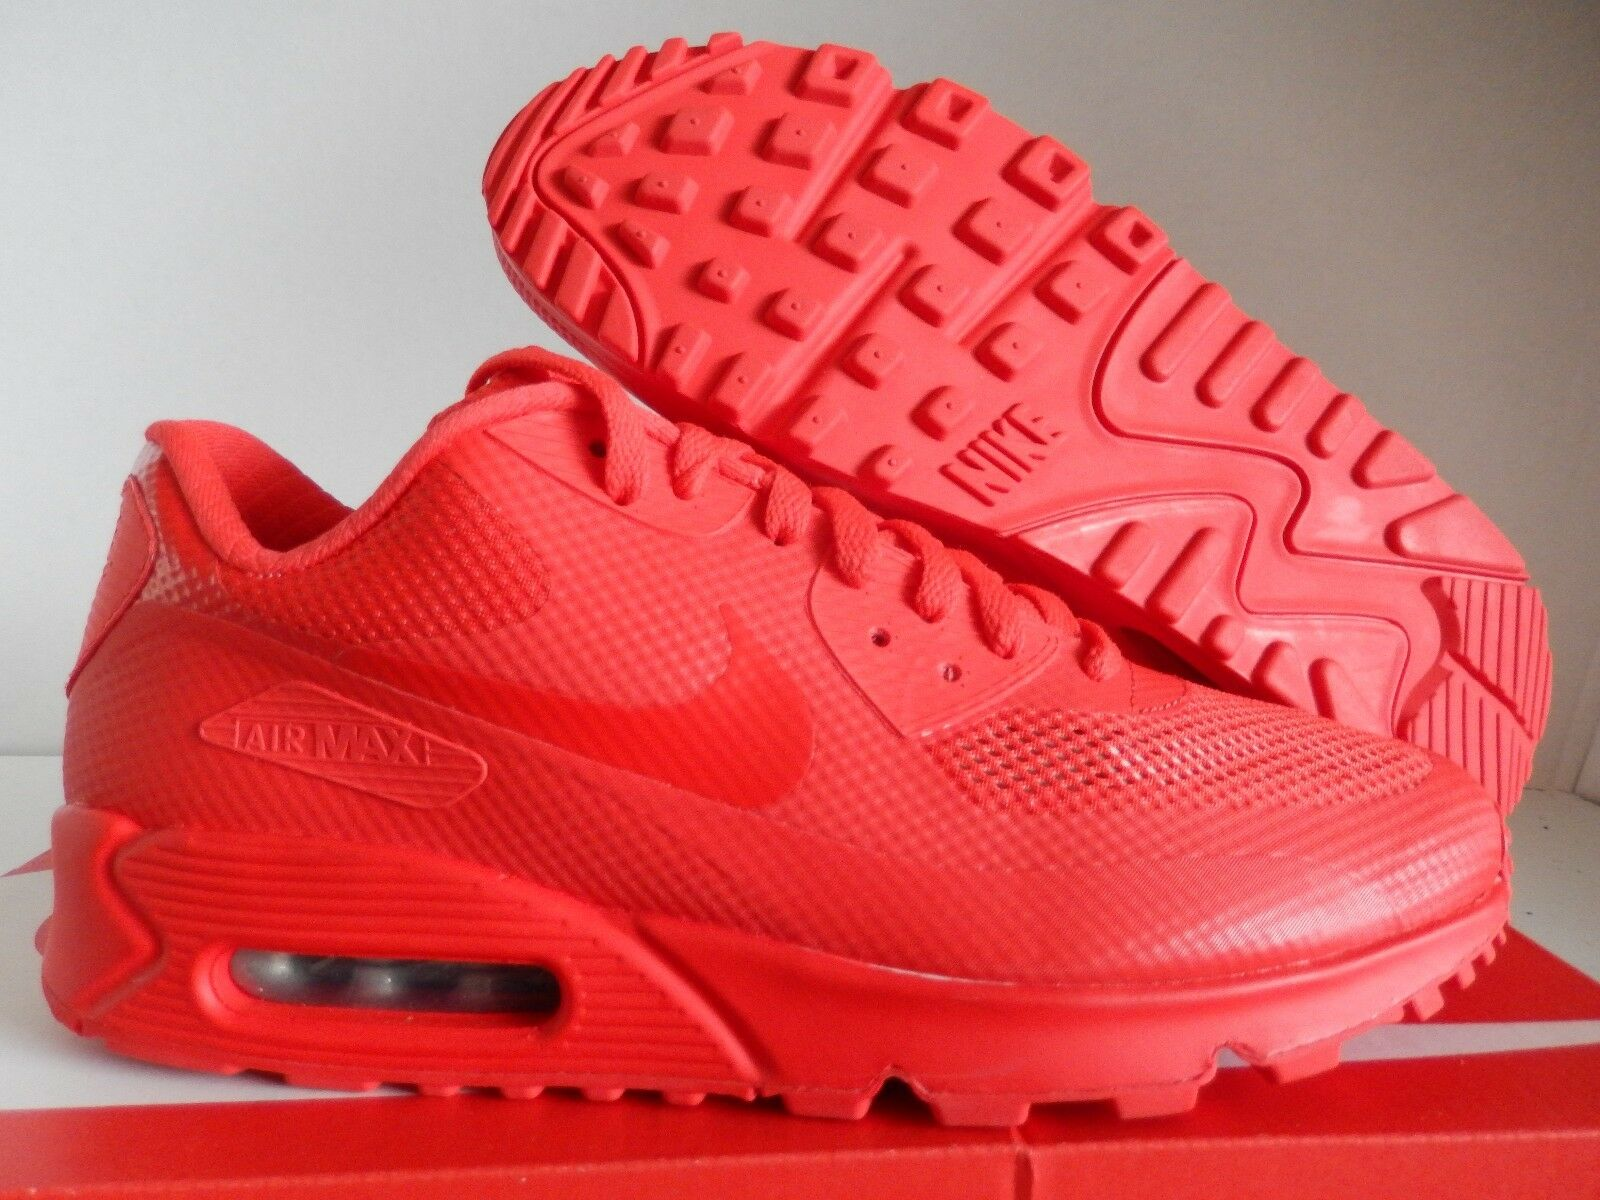 "NIKE AIR MAX 90 HYP HYPERFUSE PREMIUM ID ALL RED ""RÖD OKTOBER\"" SZ 9 [653603-991]"